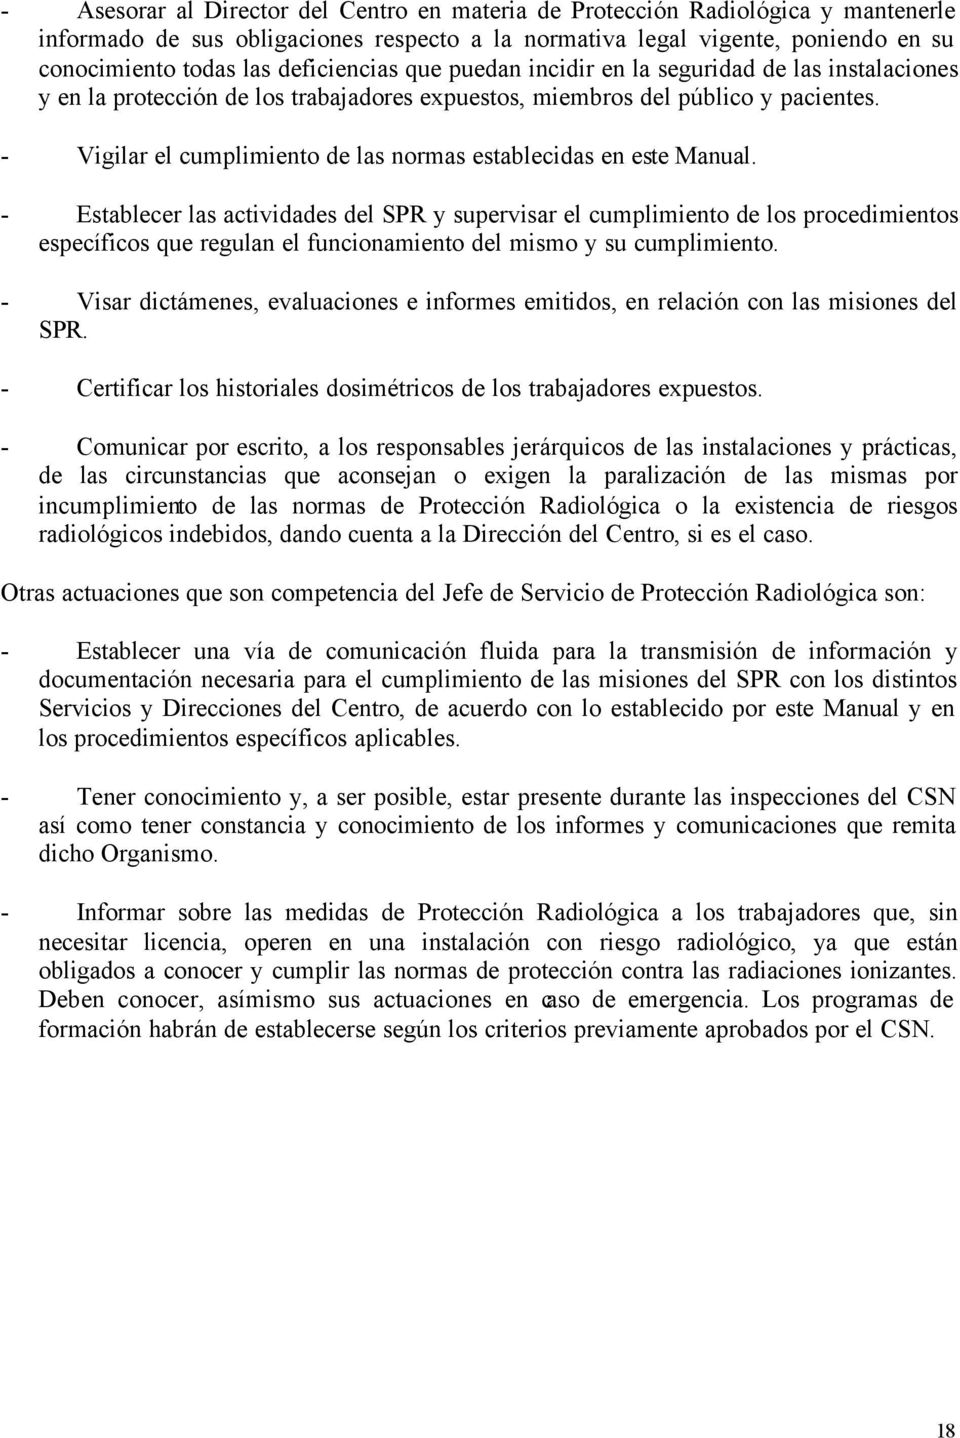 MANUAL GENERAL DE PROTECCIÓN RADIOLÓGICA - PDF